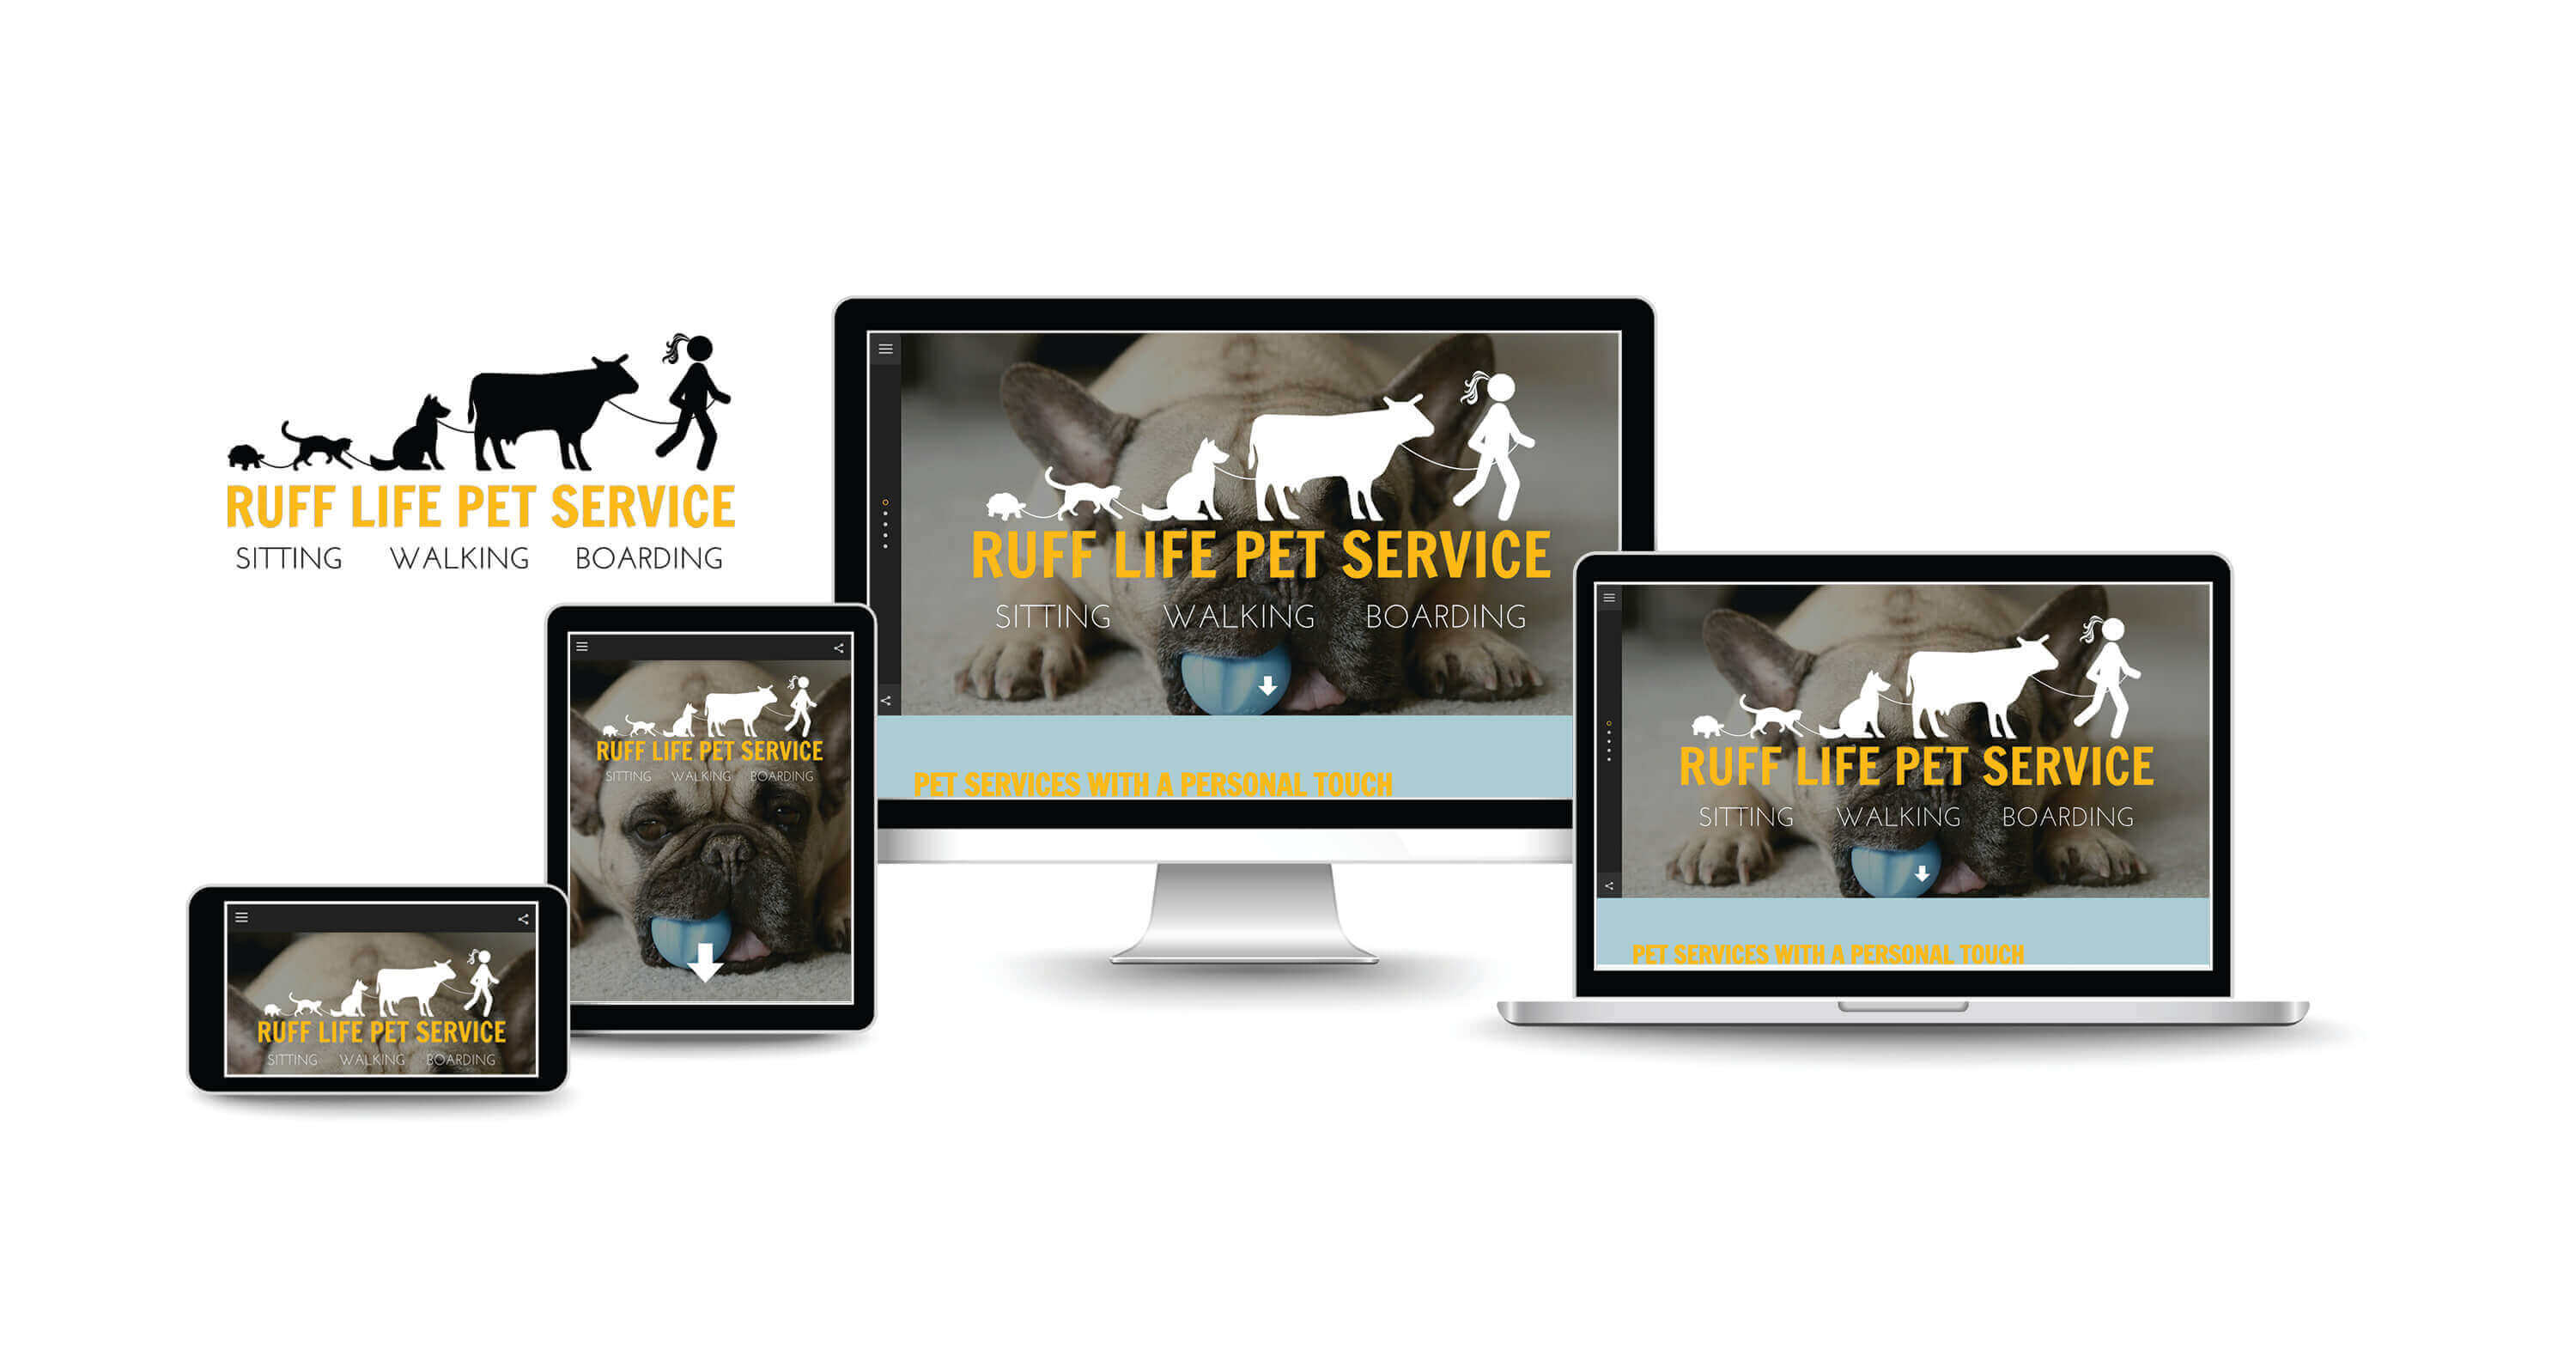 website design and SEO services for dog walkers